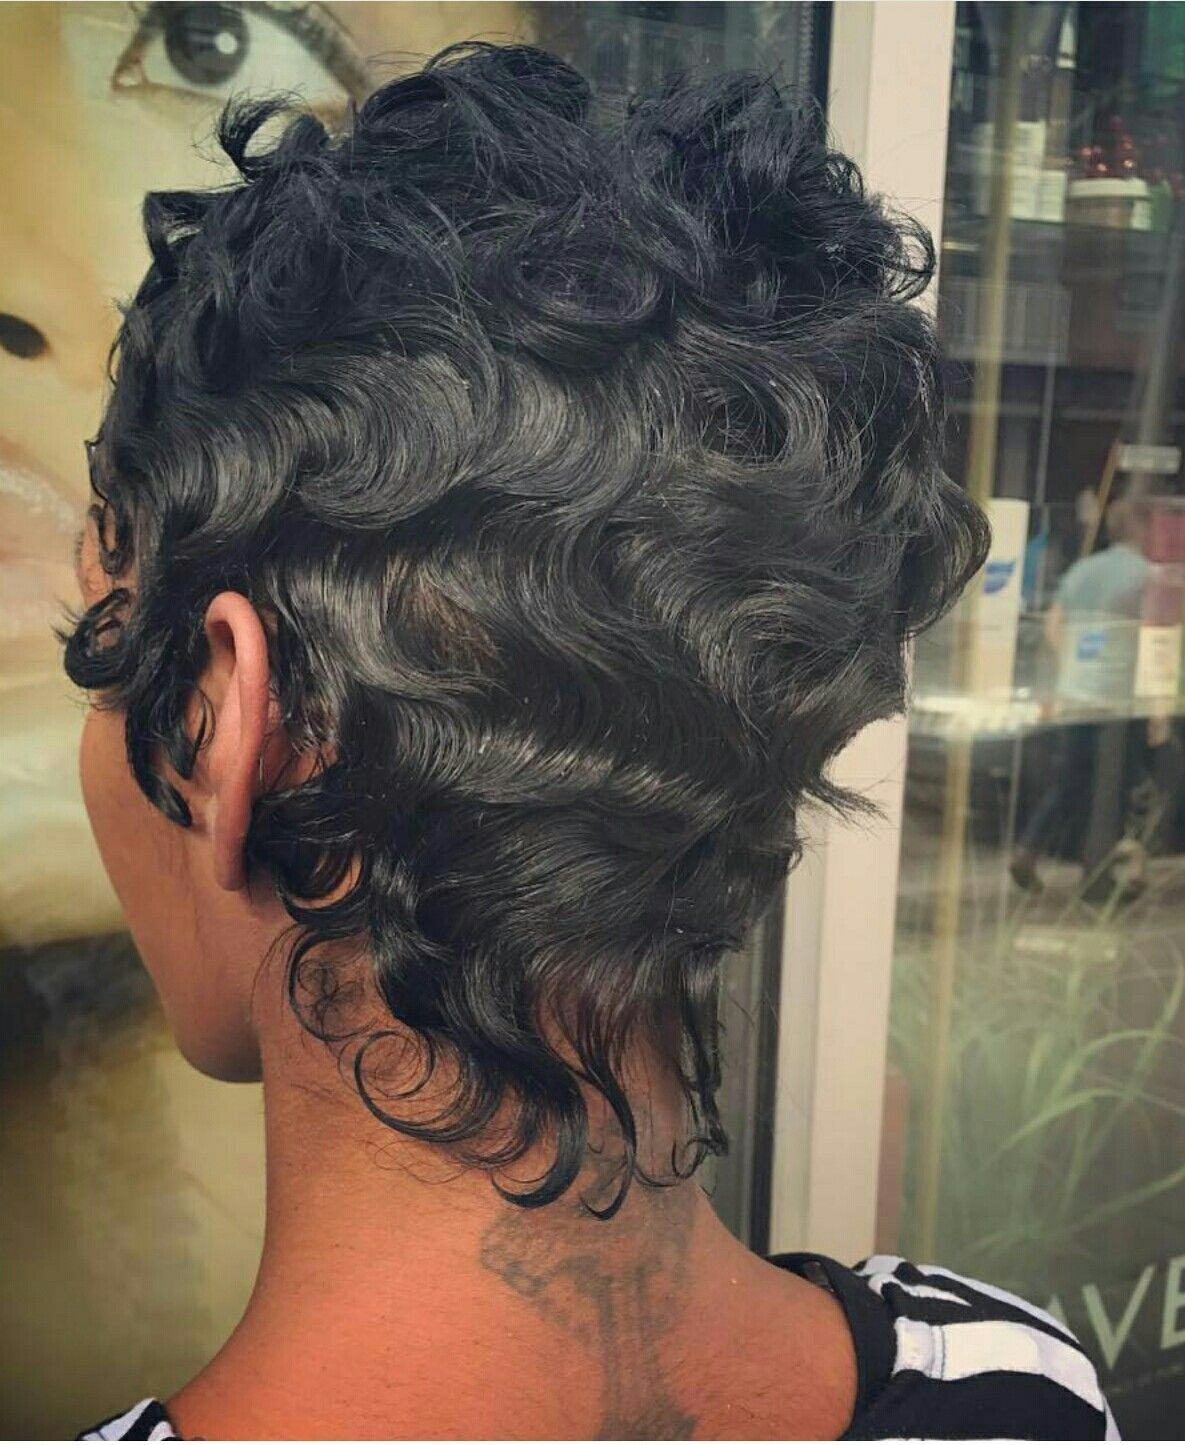 Pin by tracy davis on places to visit pinterest short hair hair